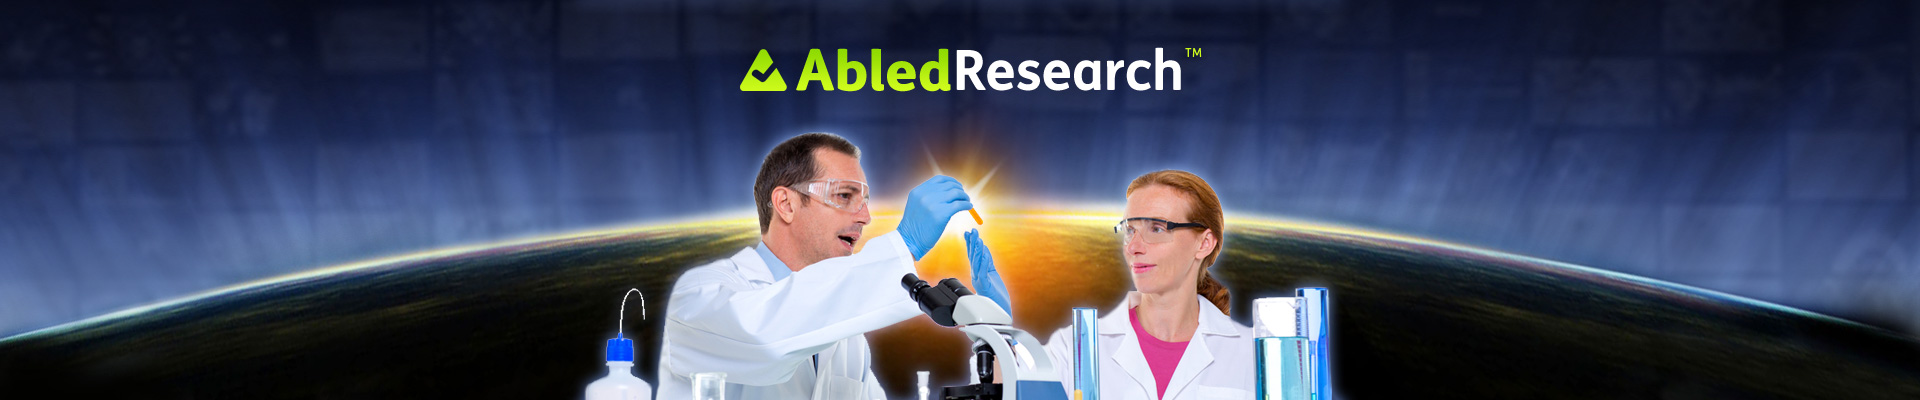 AbledResearch category Banner